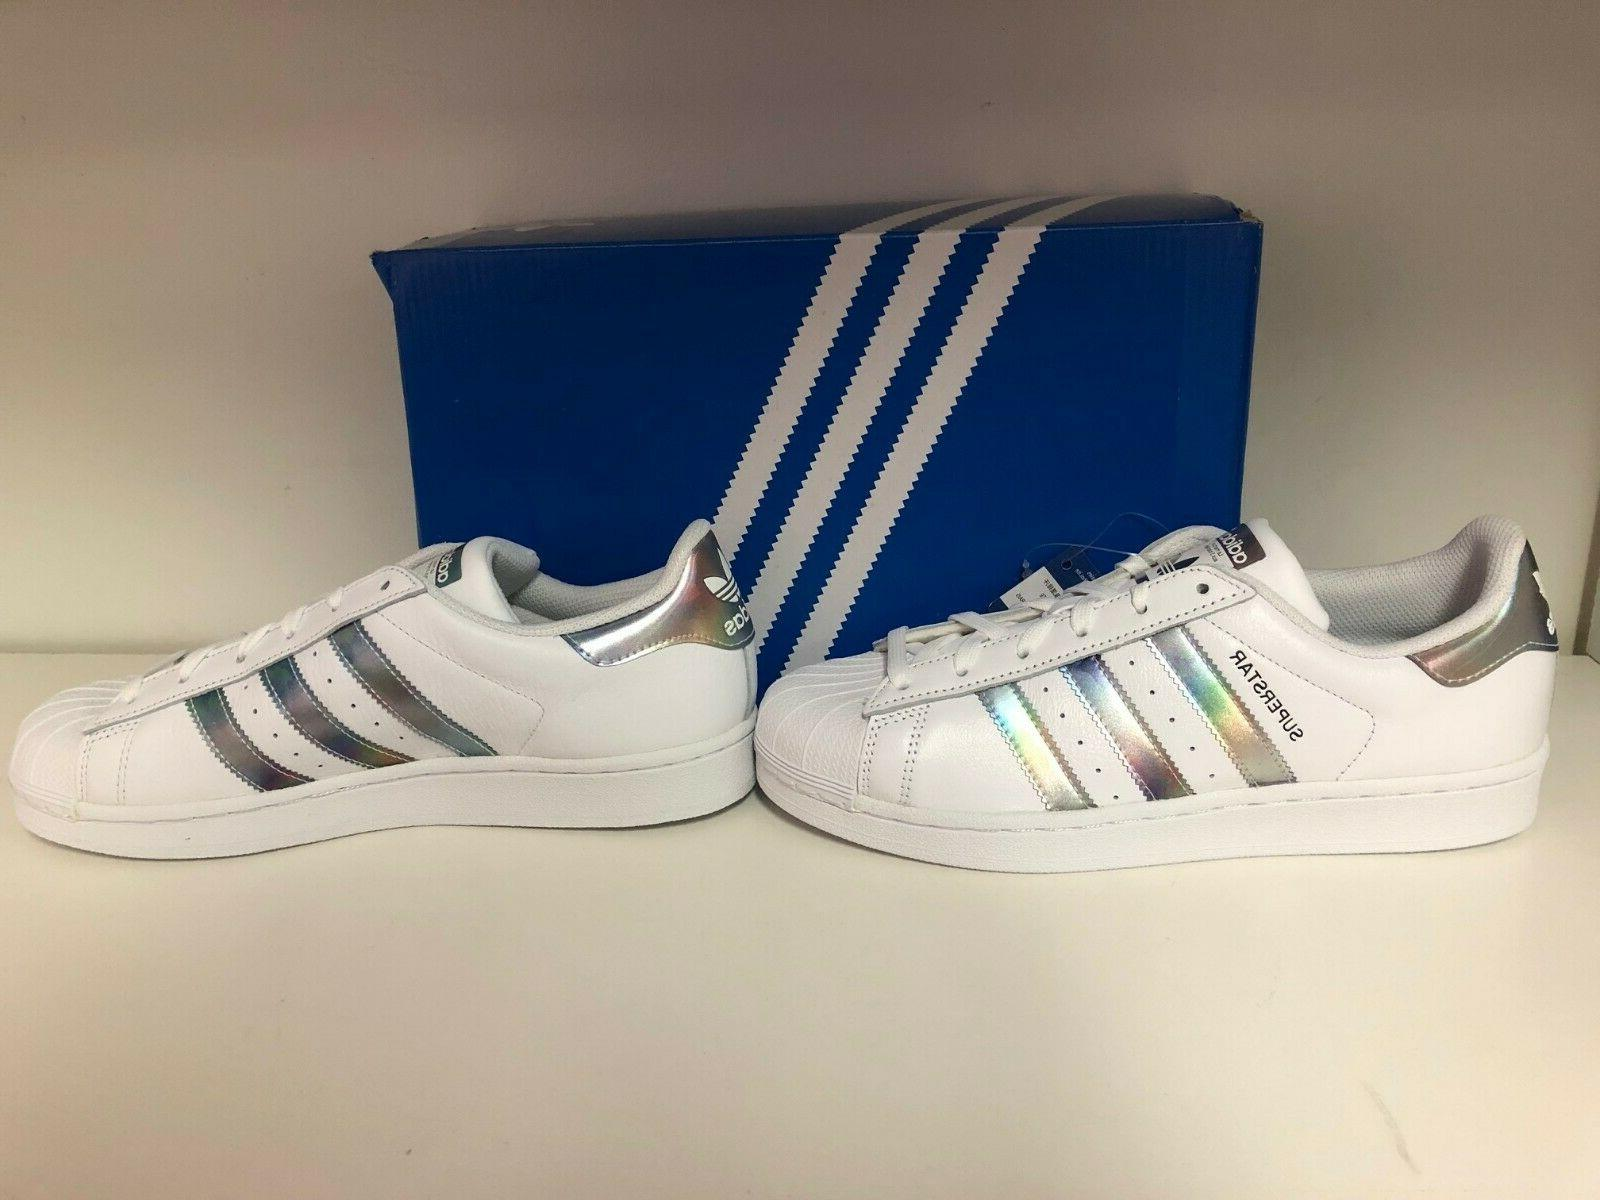 Adidas Superstar Shell White/Metallic Size